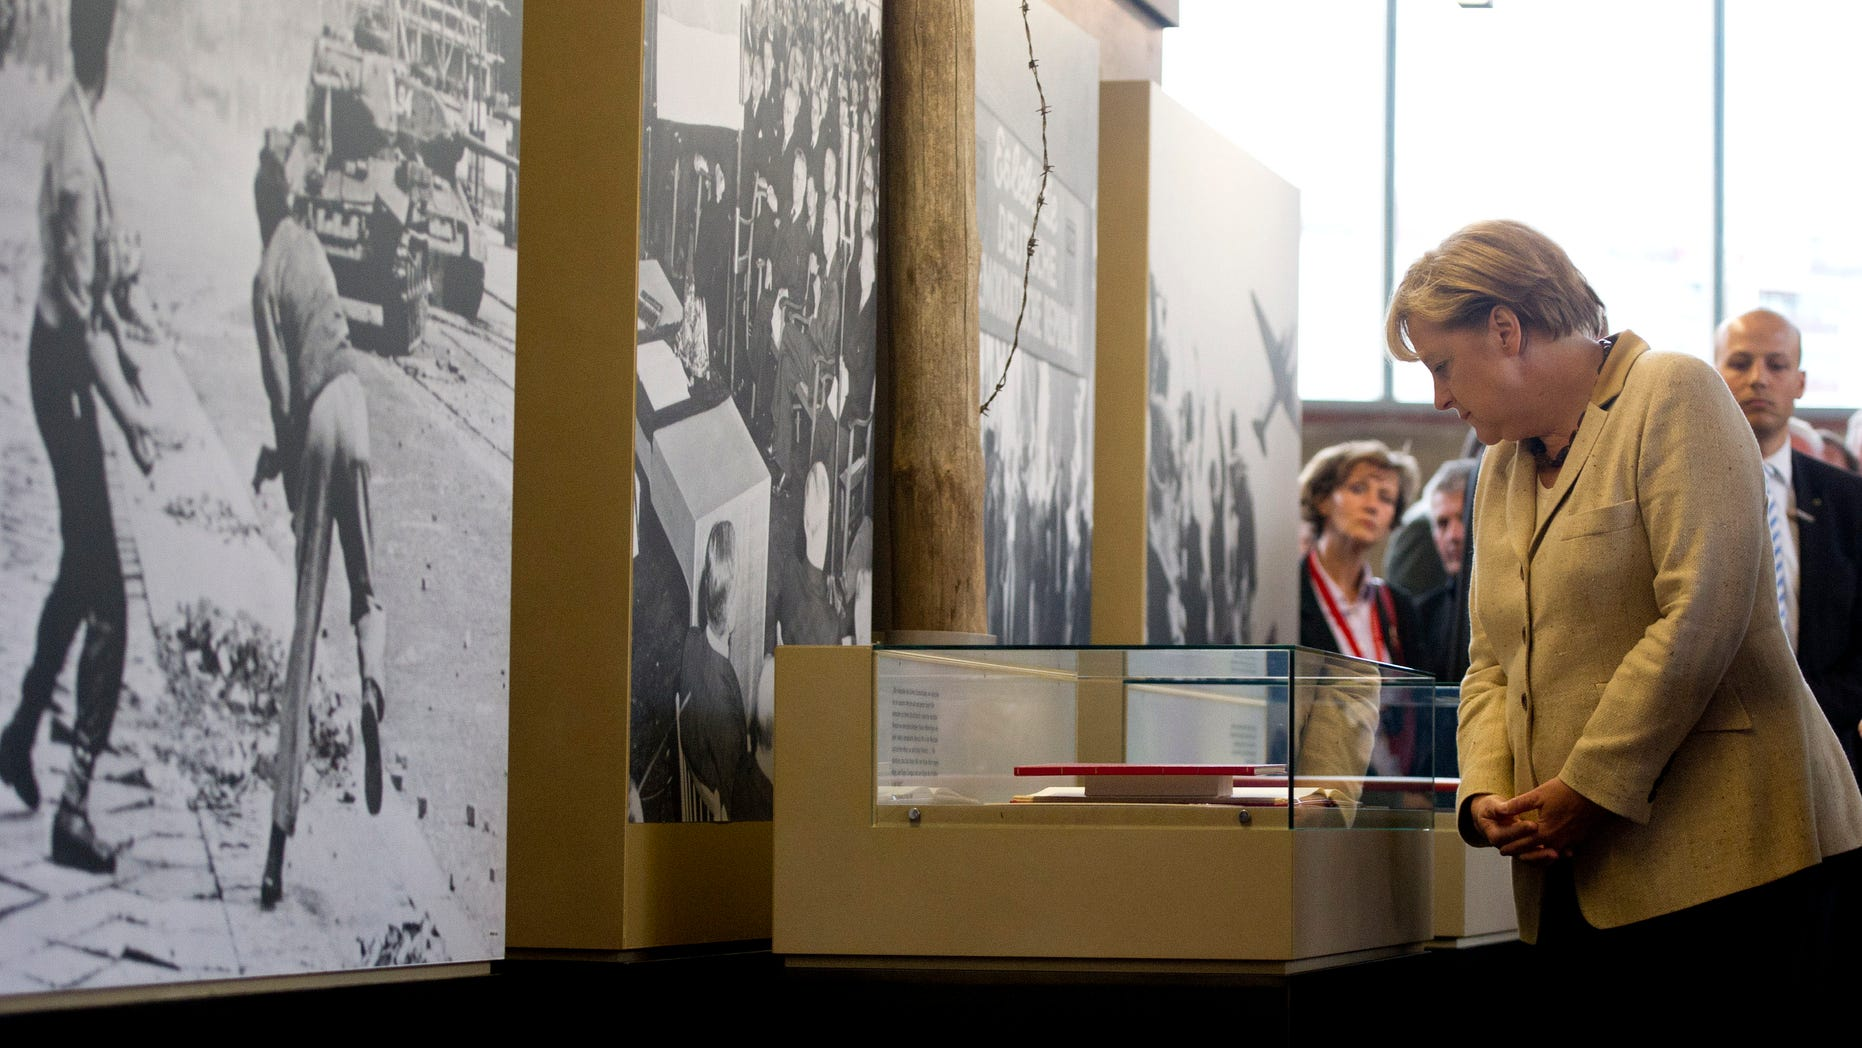 """German Chancellor Angela Merkel views exhibits at a permanent exhibition on Germany's Cold War past at what was once one of East Berlin's busiest border crossings, in Berlin, Germany, Wednesday, Sept. 14, 2011. The exhibition is housed in the restored 1960's building where passport and customs checks were carried out at Berlin's Friedrichstrasse station. It was popularly known as the """"Traenenpalast,"""" or """"Palace of Tears."""""""